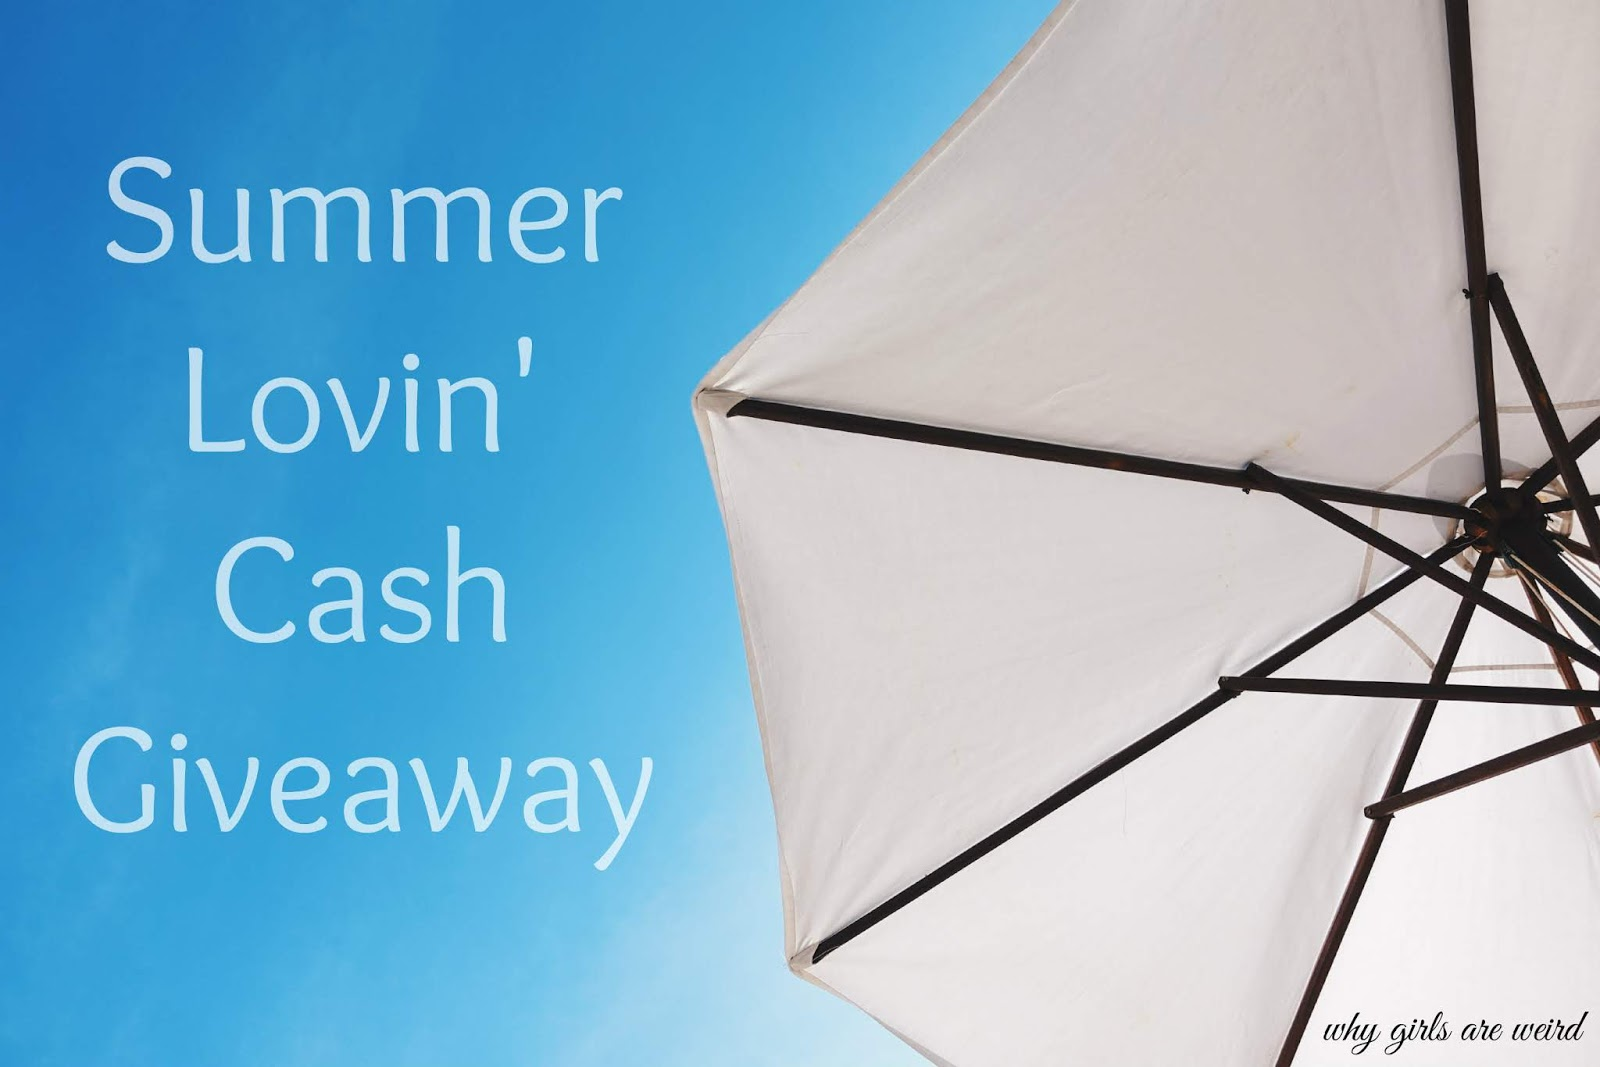 Summer Lovin' Cash Giveaway